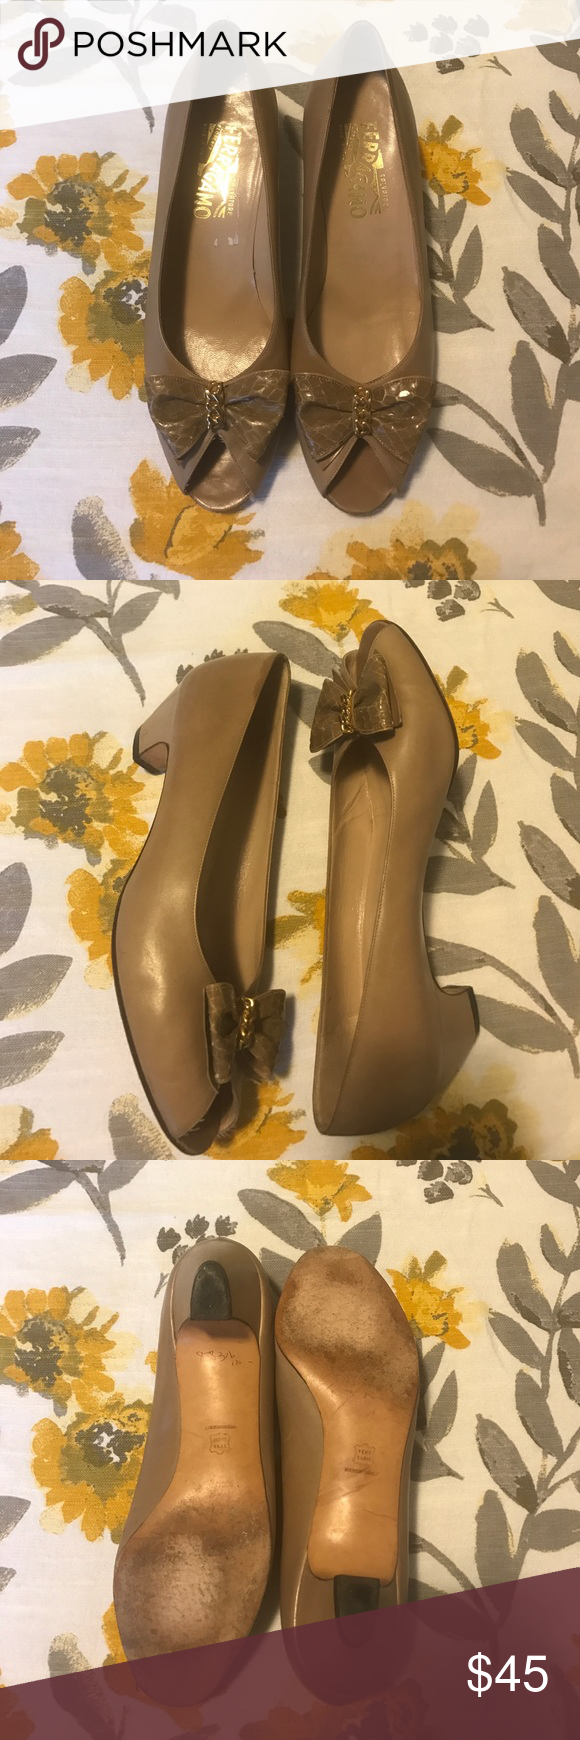 Ferráramos heels Made of leather in great used condition. Have no major flaws other than being gently used. Ferragamo Shoes Heels